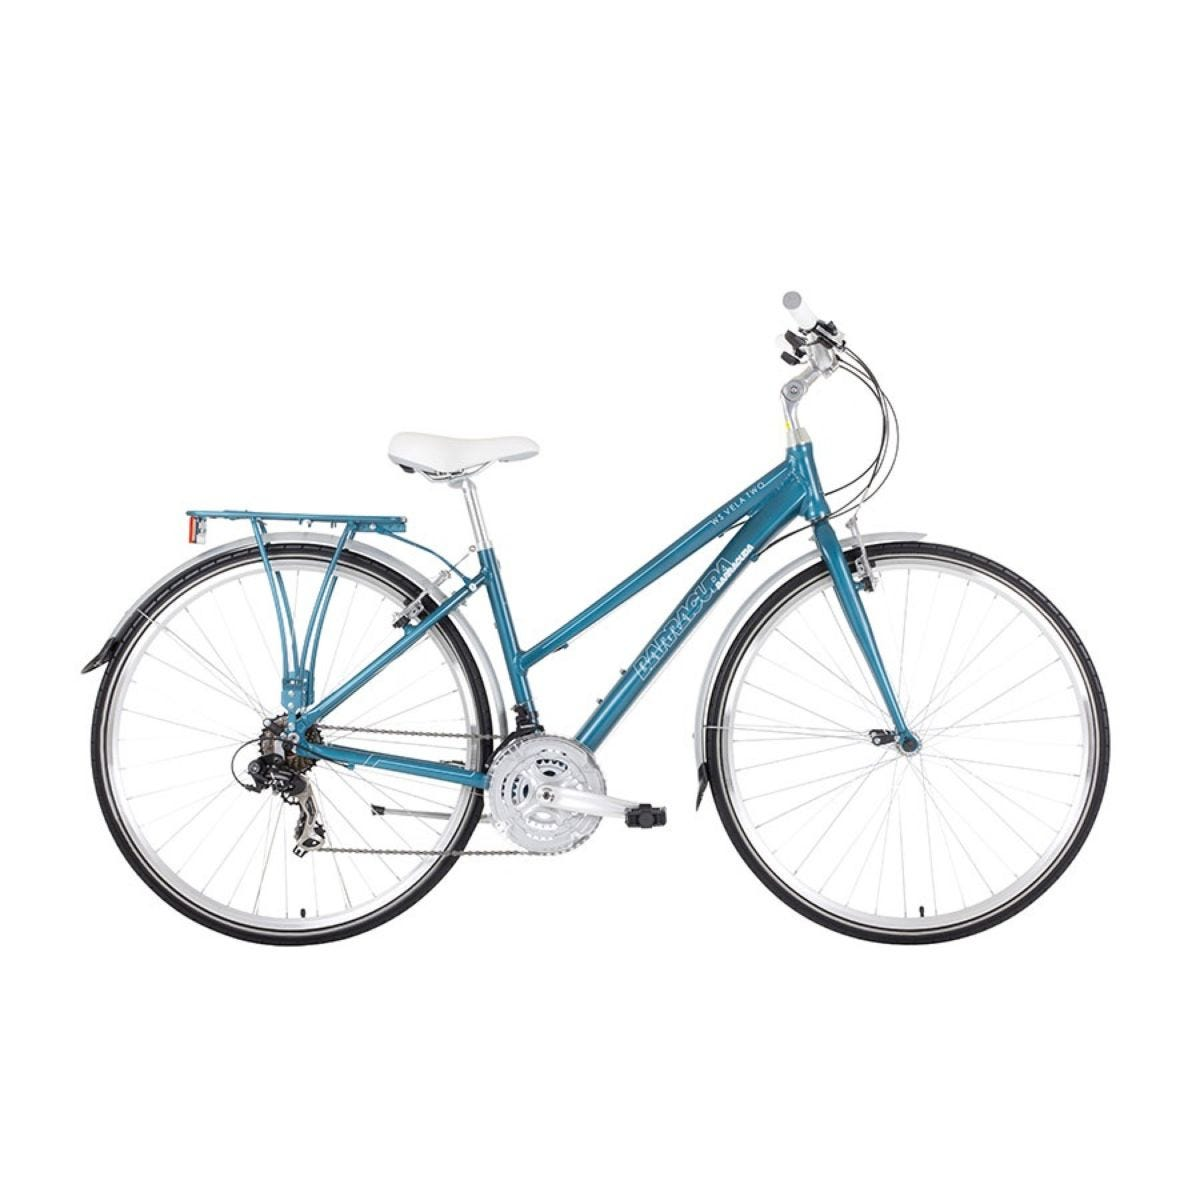 Barracuda Vela 2 Ladies 700c Alloy Hybrid FE Bike